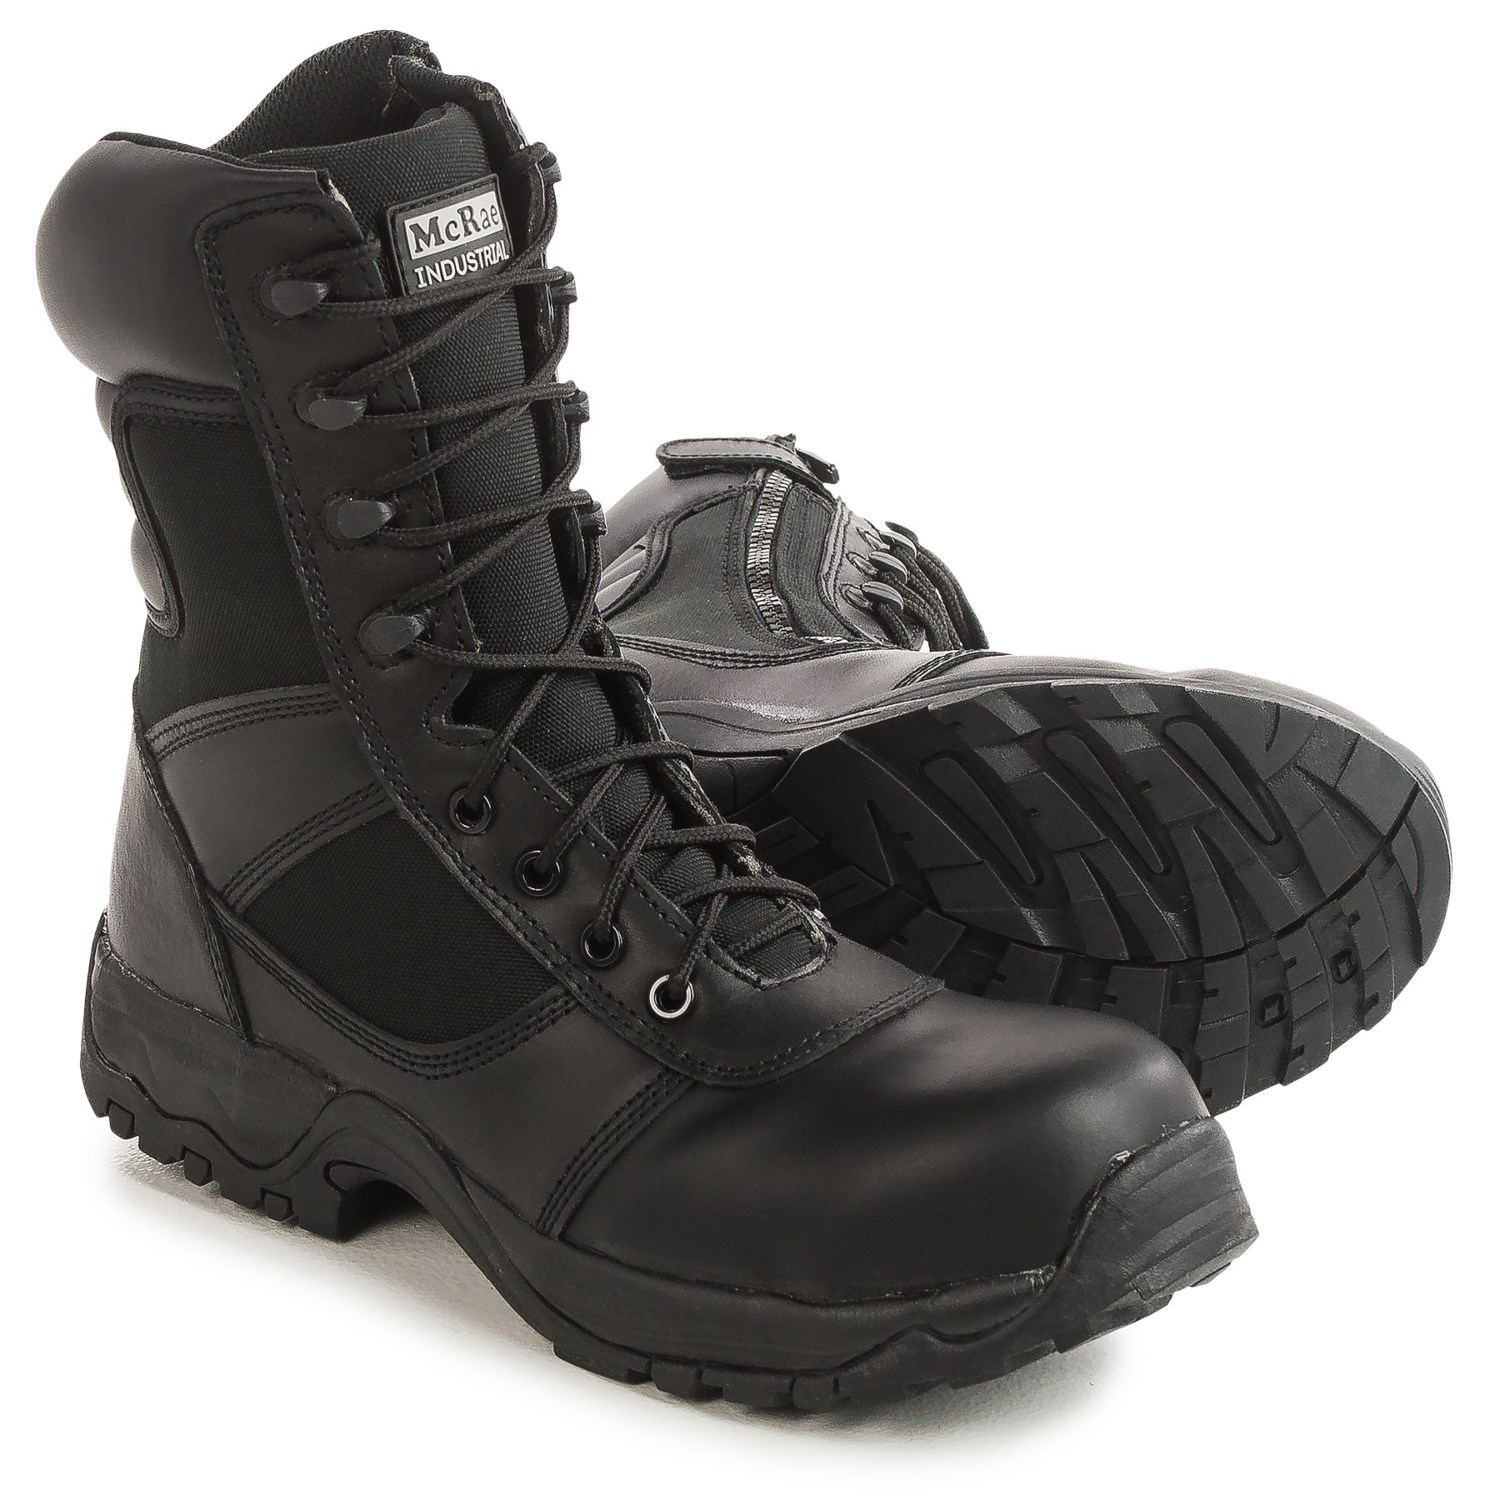 McRae Industrial Work Boots (For Men) - Save 55%